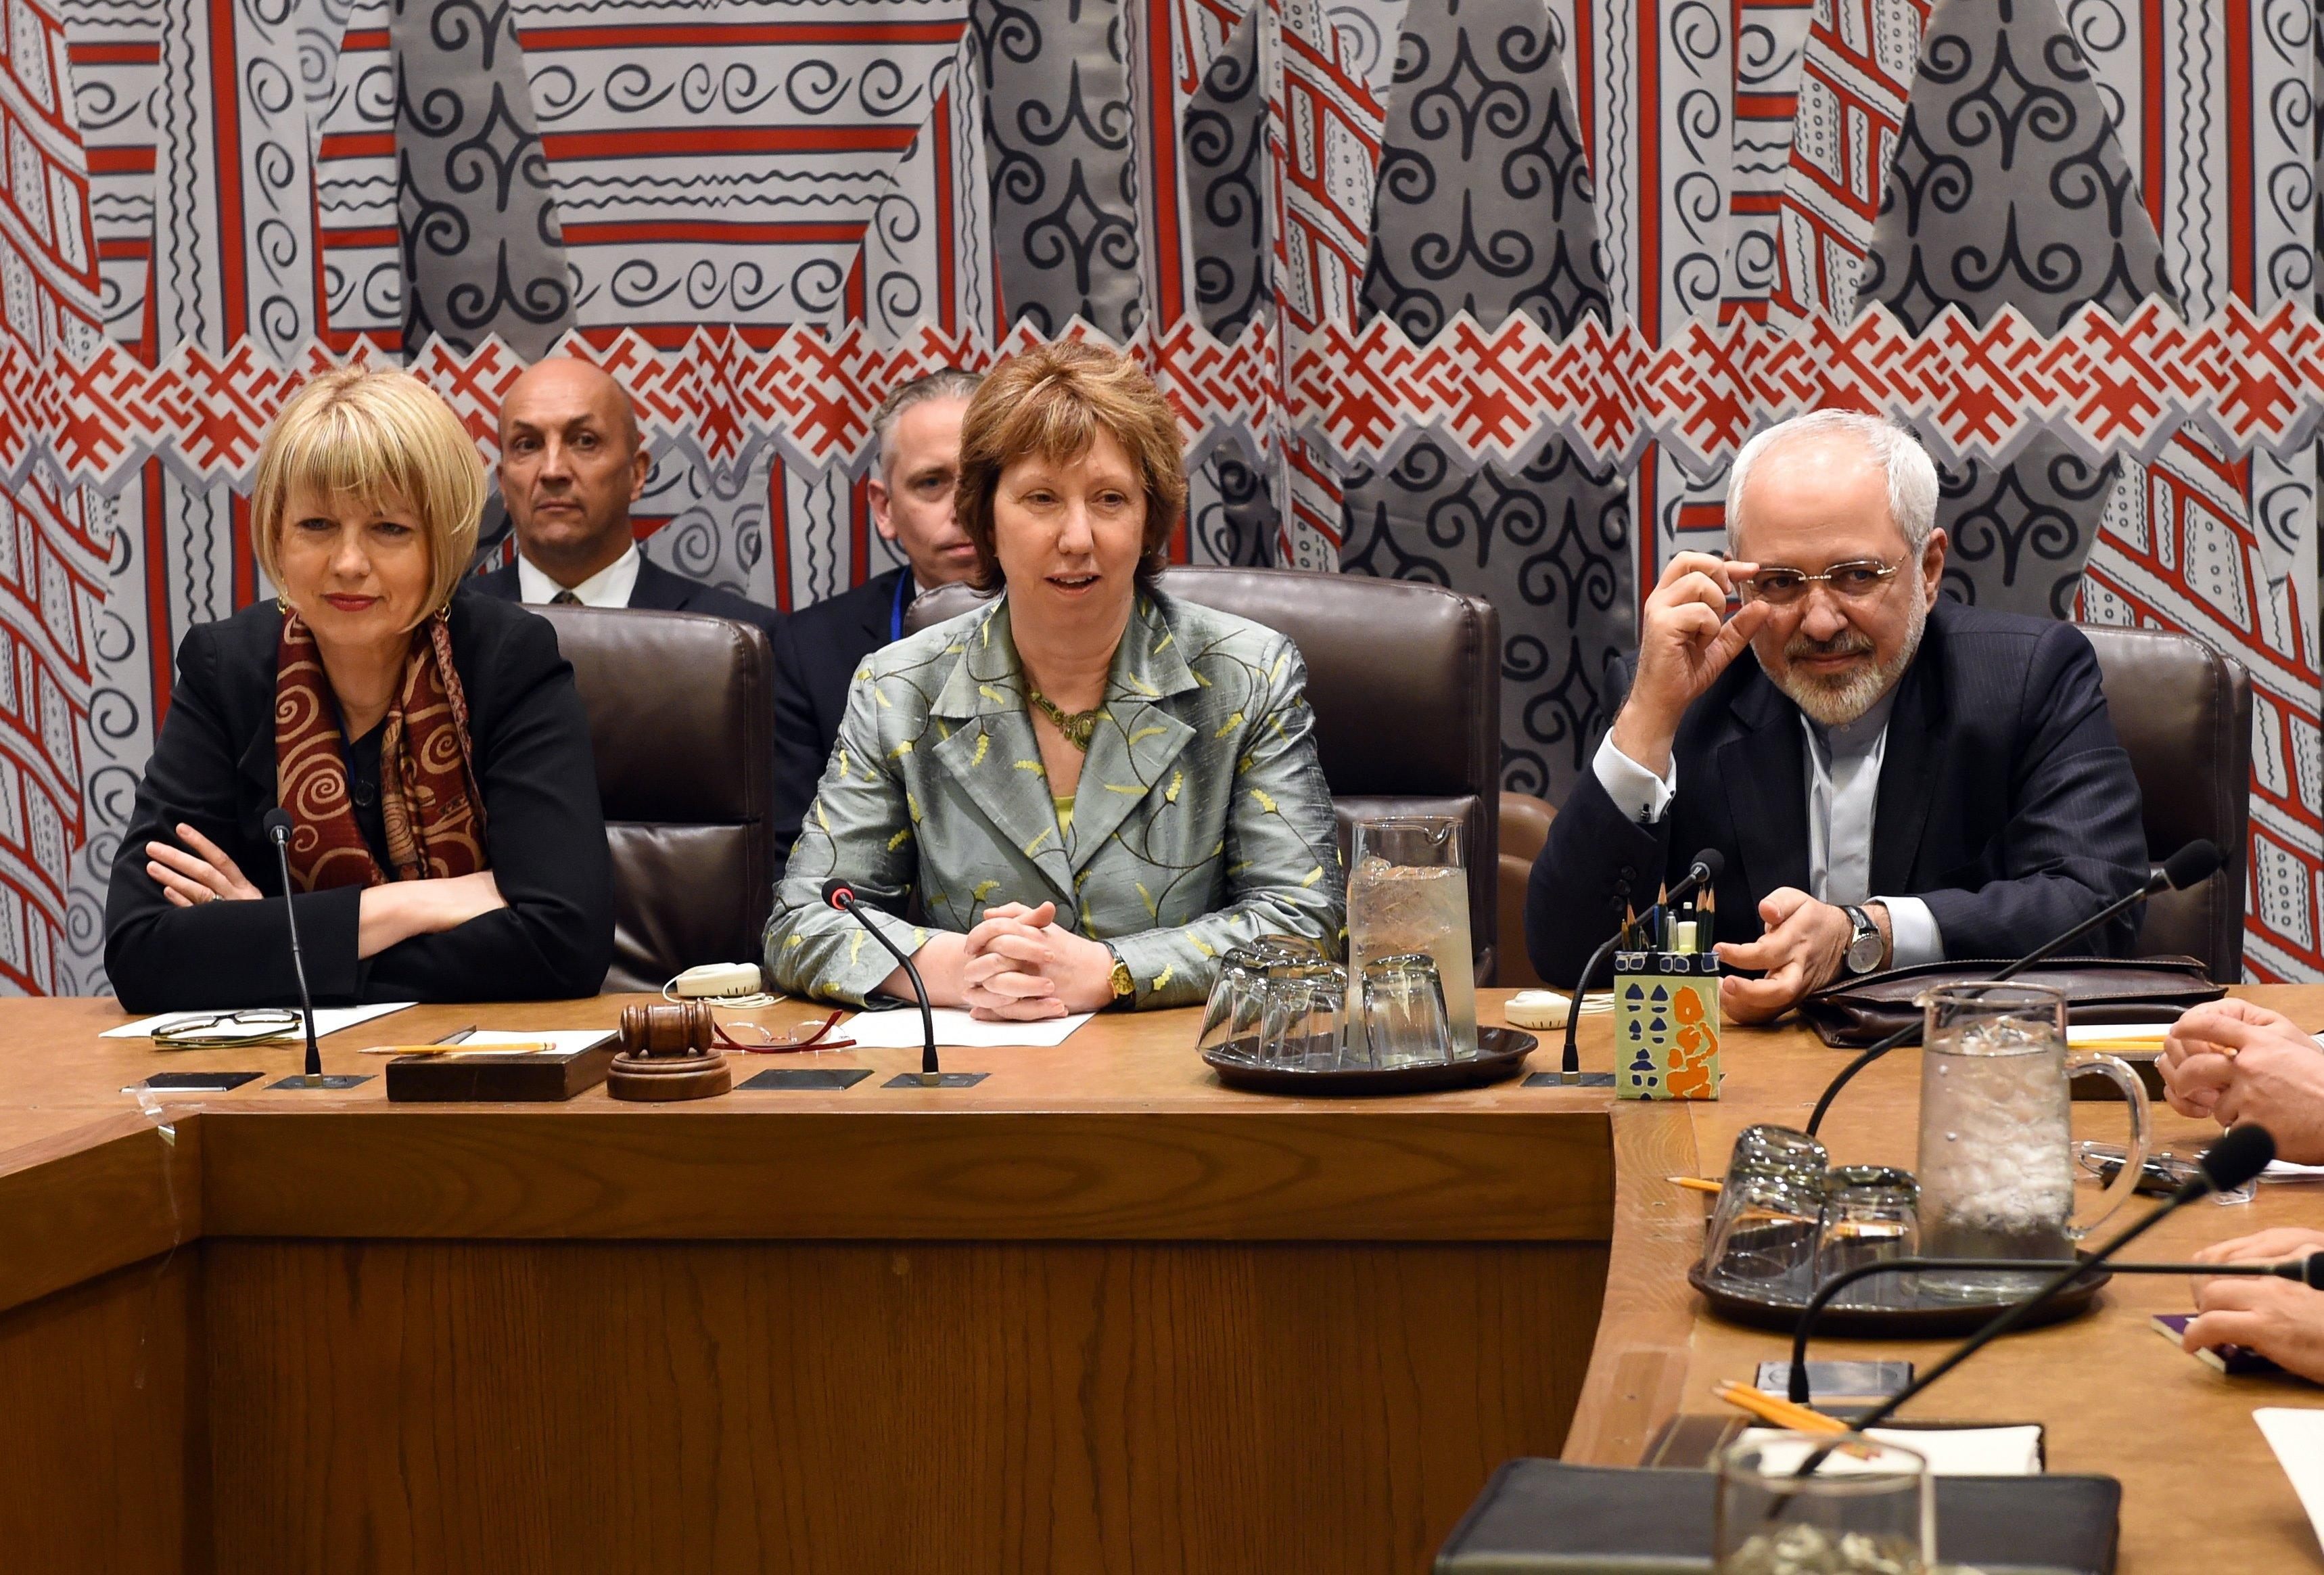 EU foreign affairs chief Catherine Ashton and Iran's FM Mohammad Javad Zarif attend a meeting of the internal E3+3 meeting at the United Nations in New York on September 19, 2014 (AFP Photo/Timothy A. Clary)